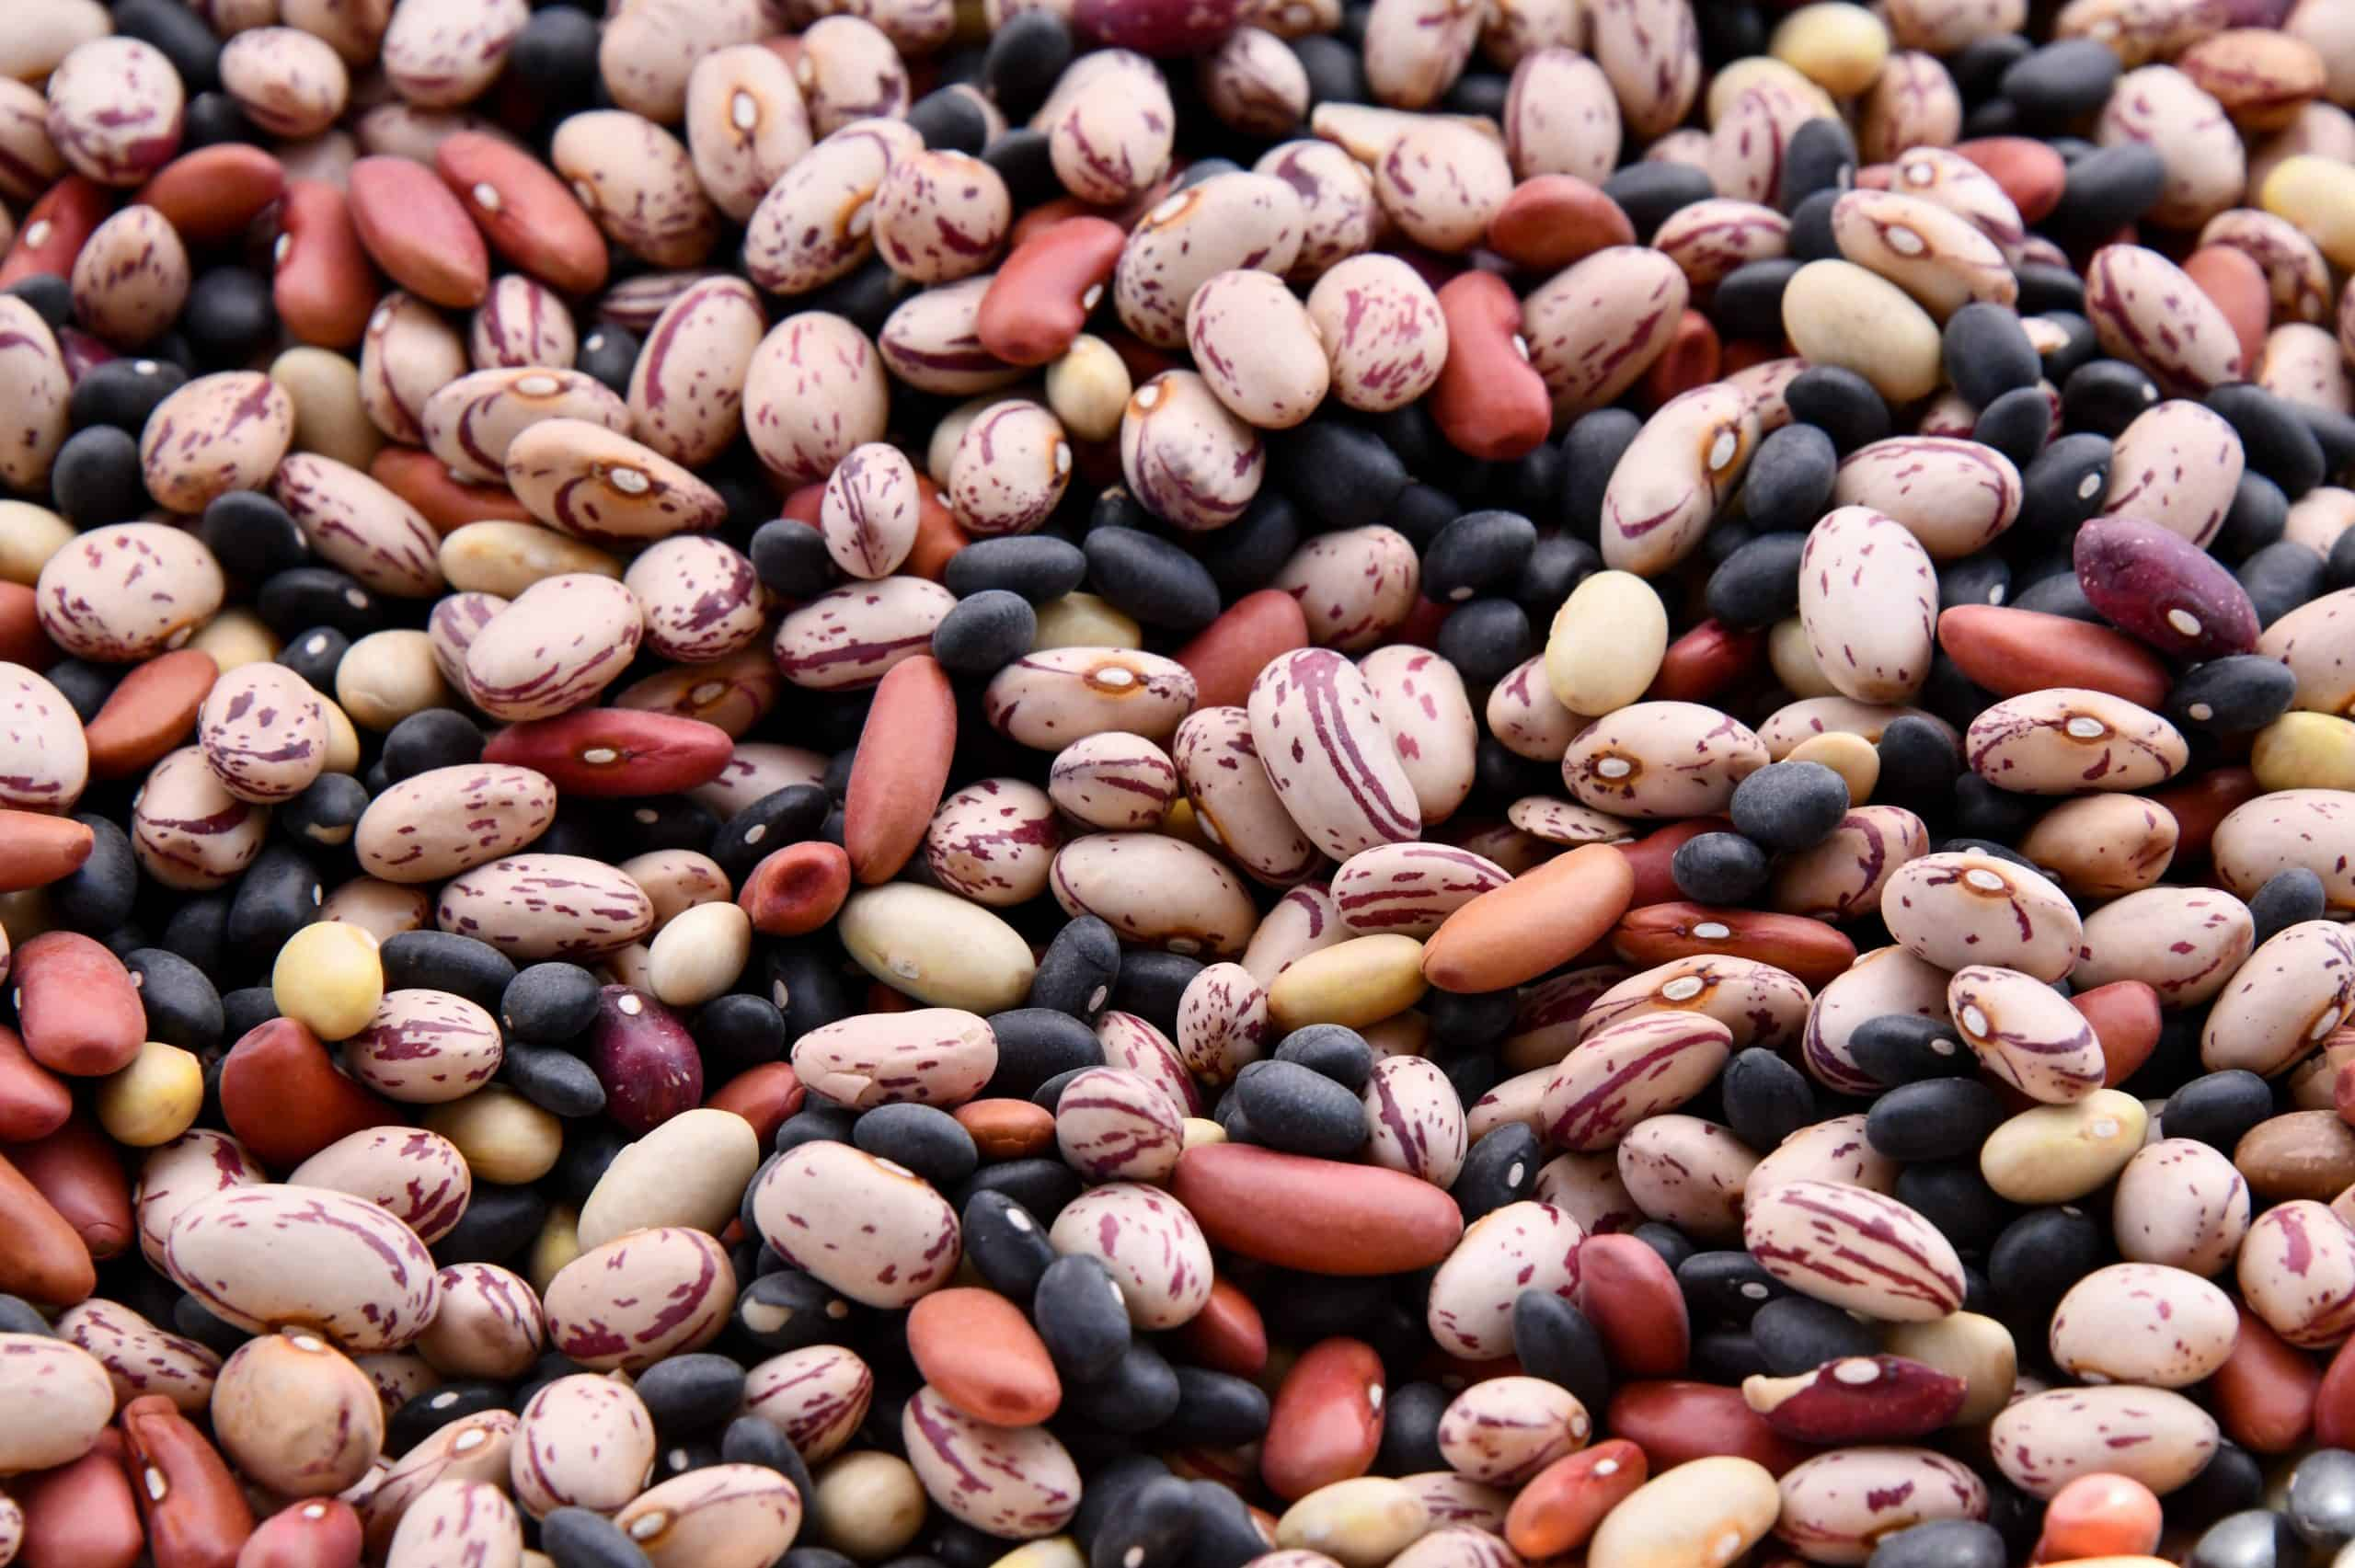 Legumes as protein source